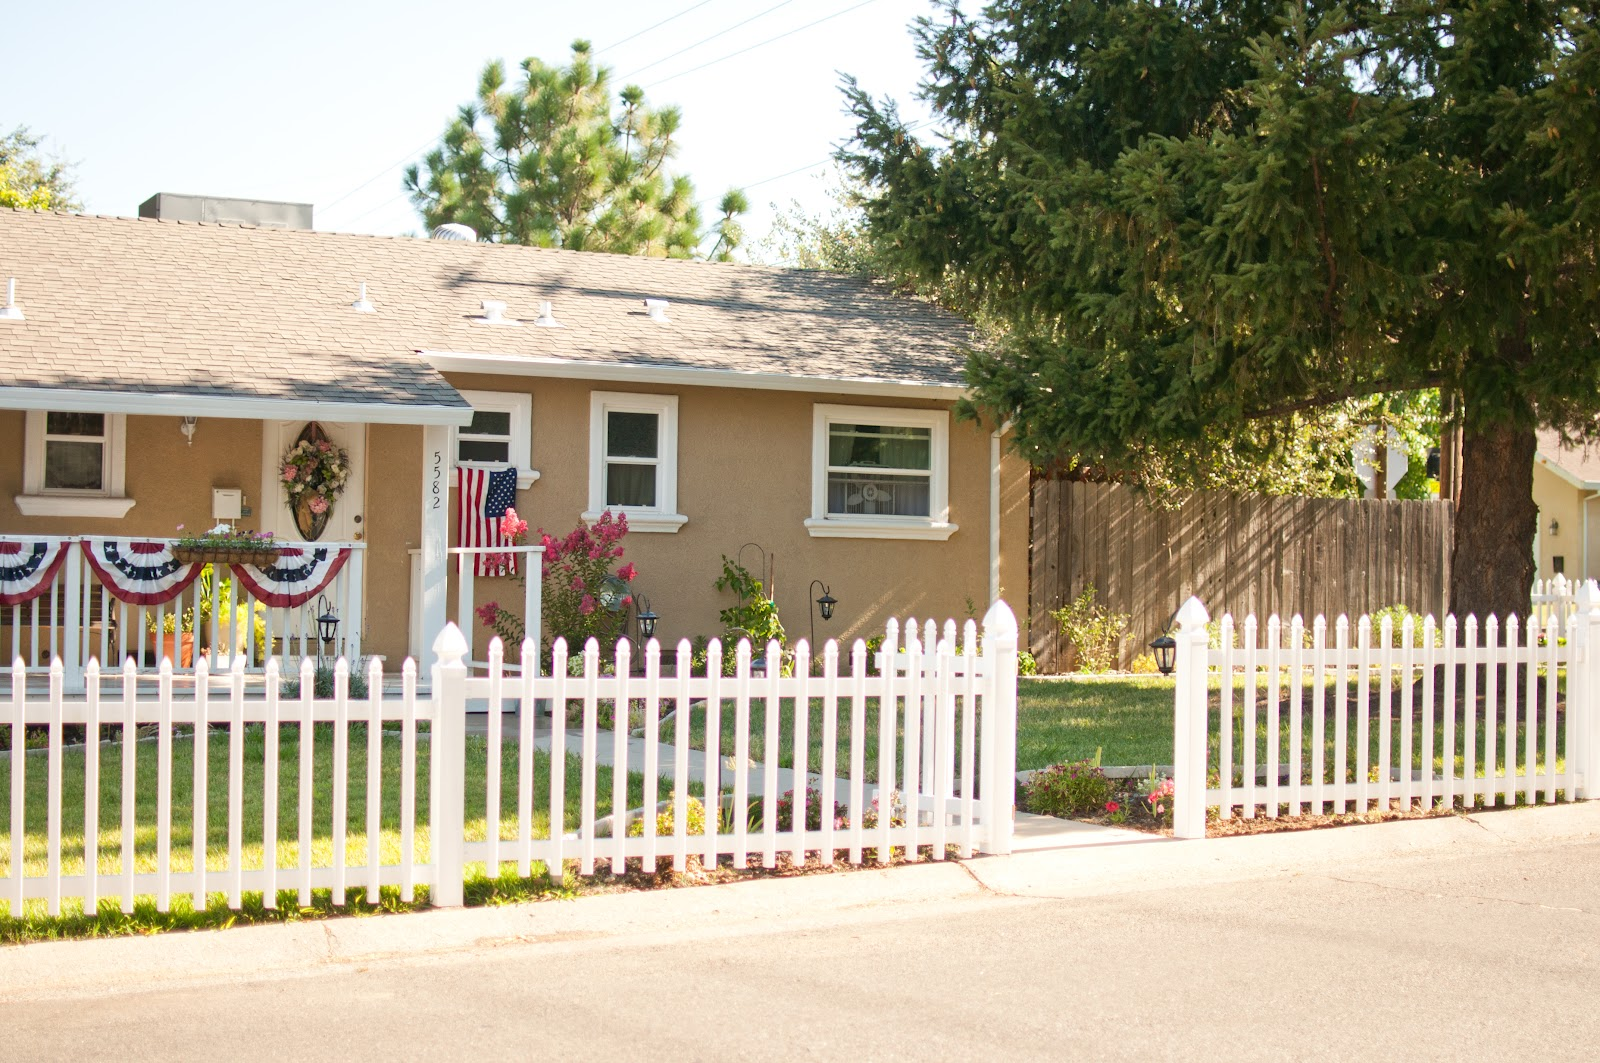 Domestic fashionista our white picket fence complete for Small front yard ideas with fence